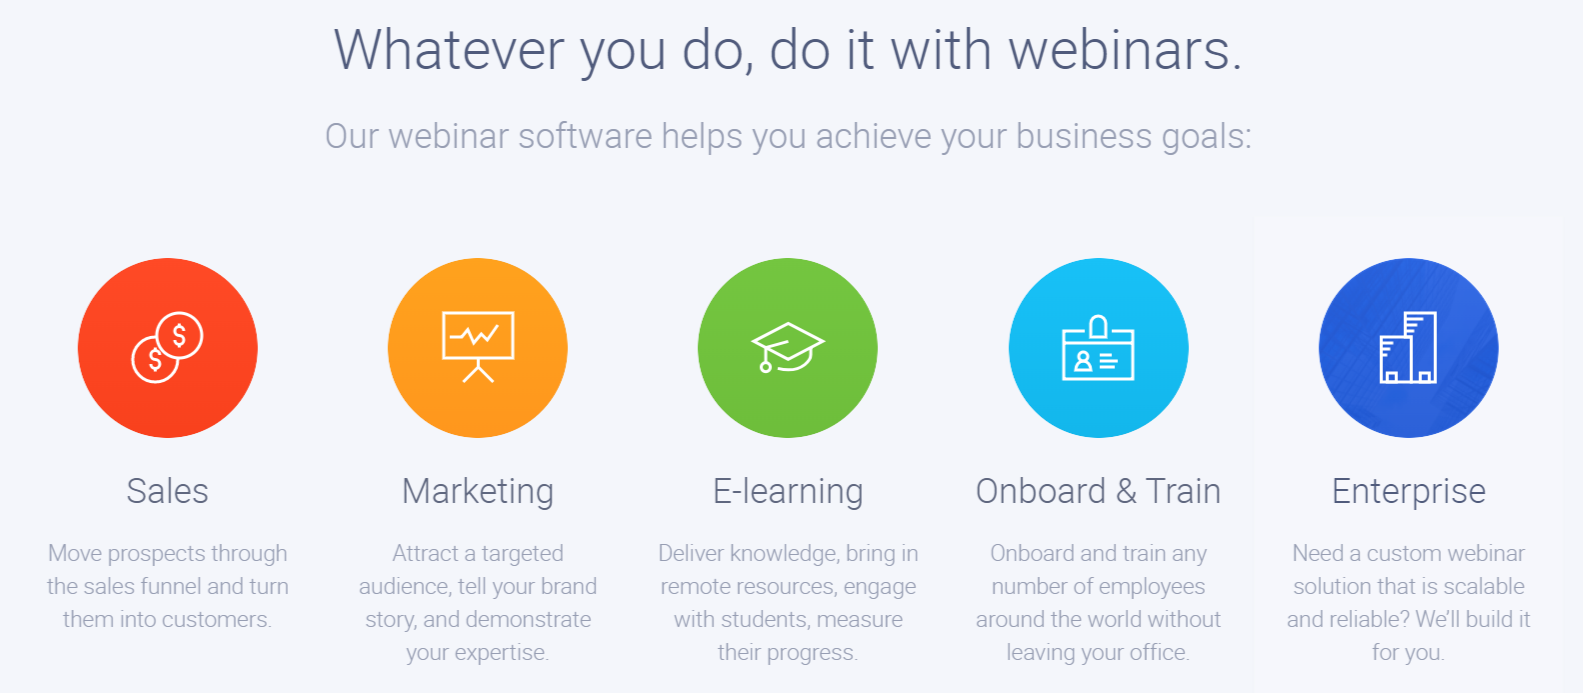 ClickMeeting Review- Who Can Use Webianr Service